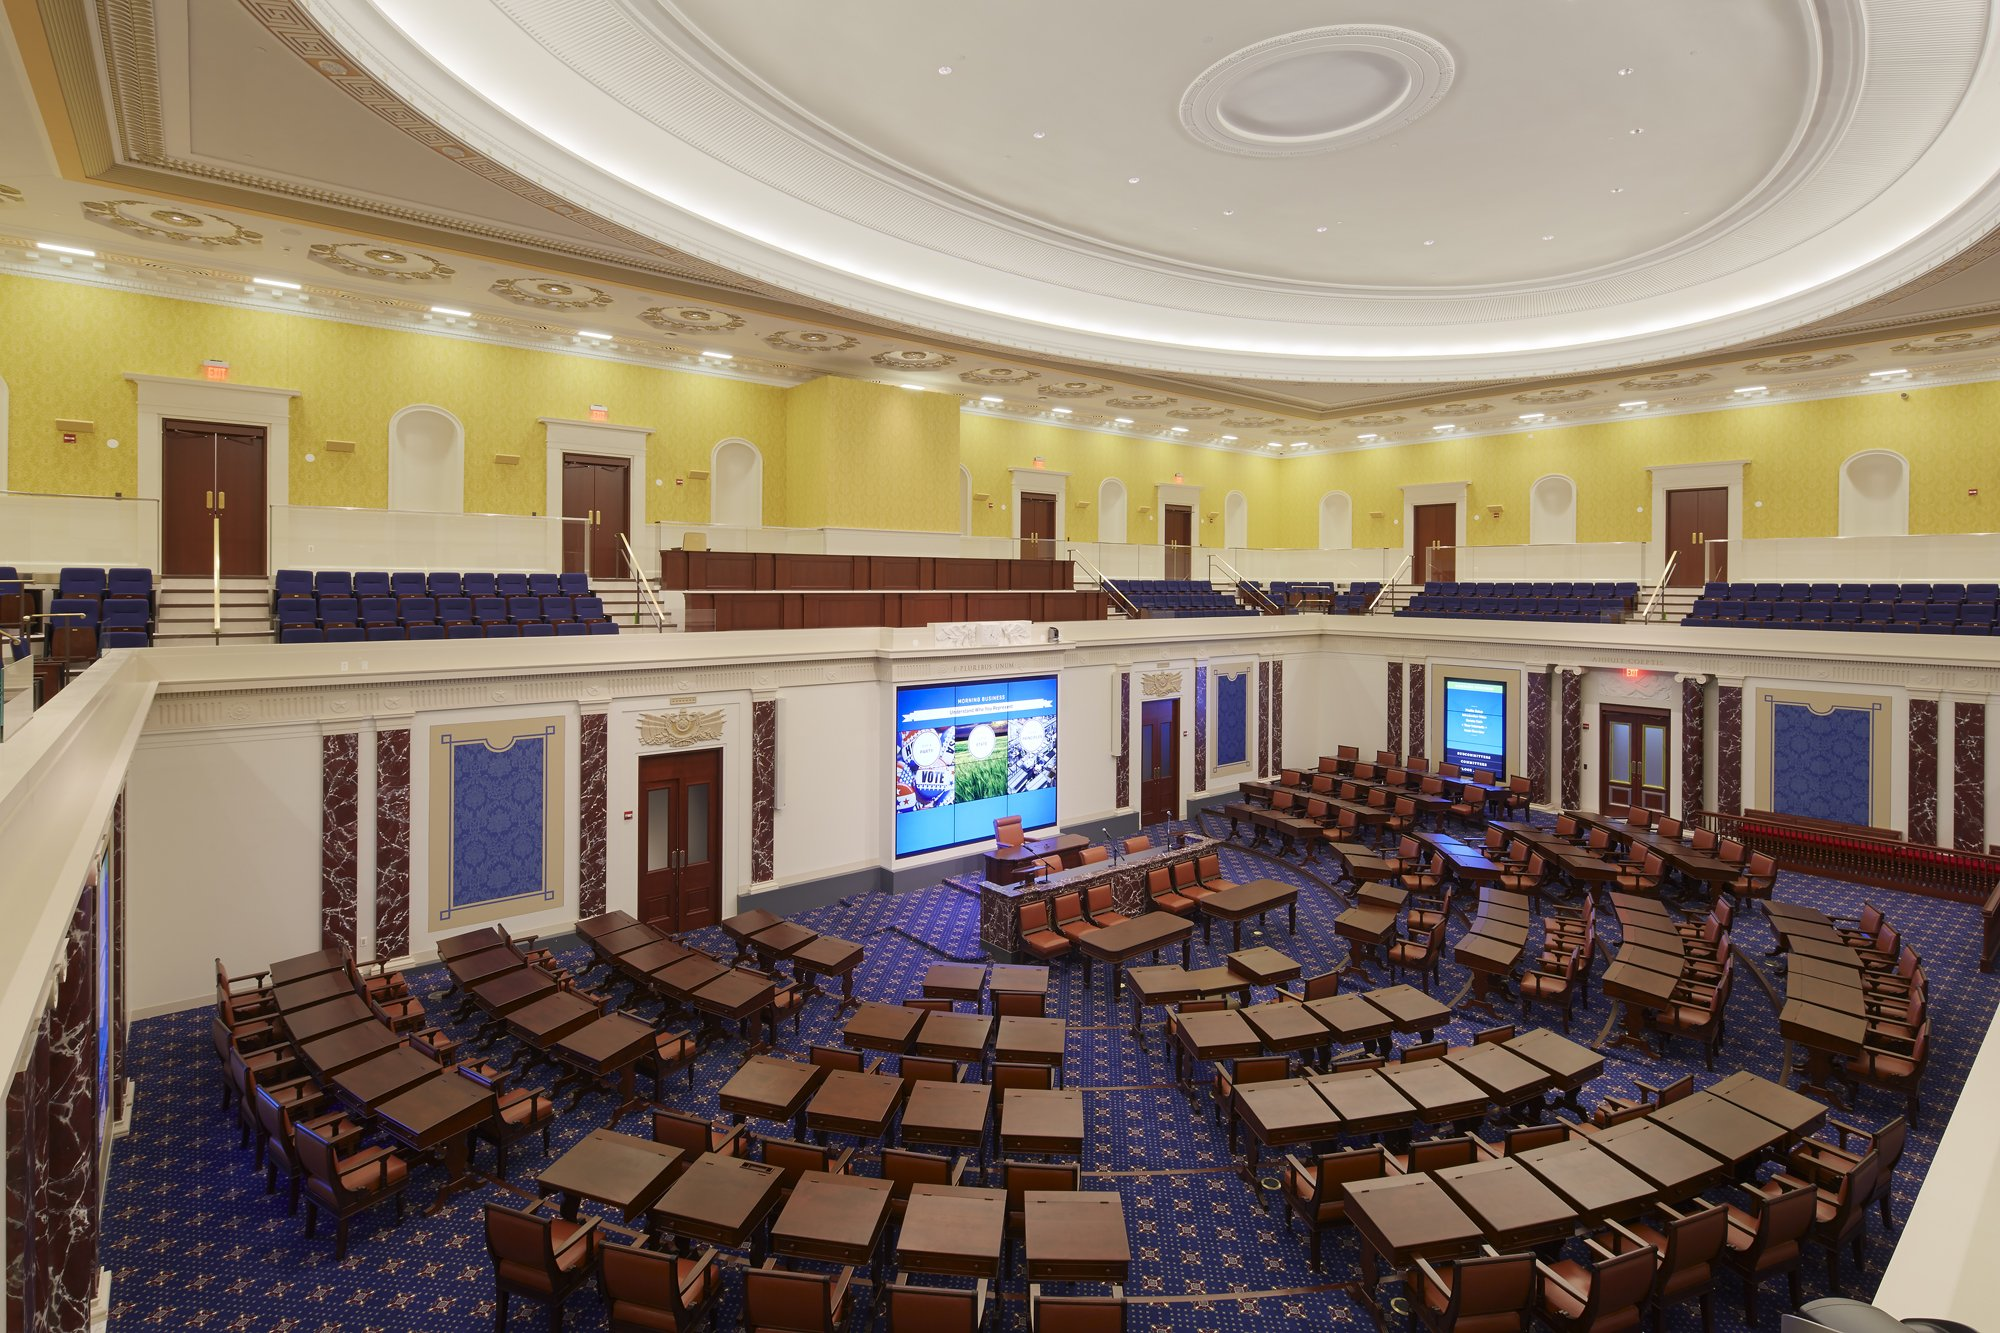 Full-scale Senate Chamber Replica inside the Institute